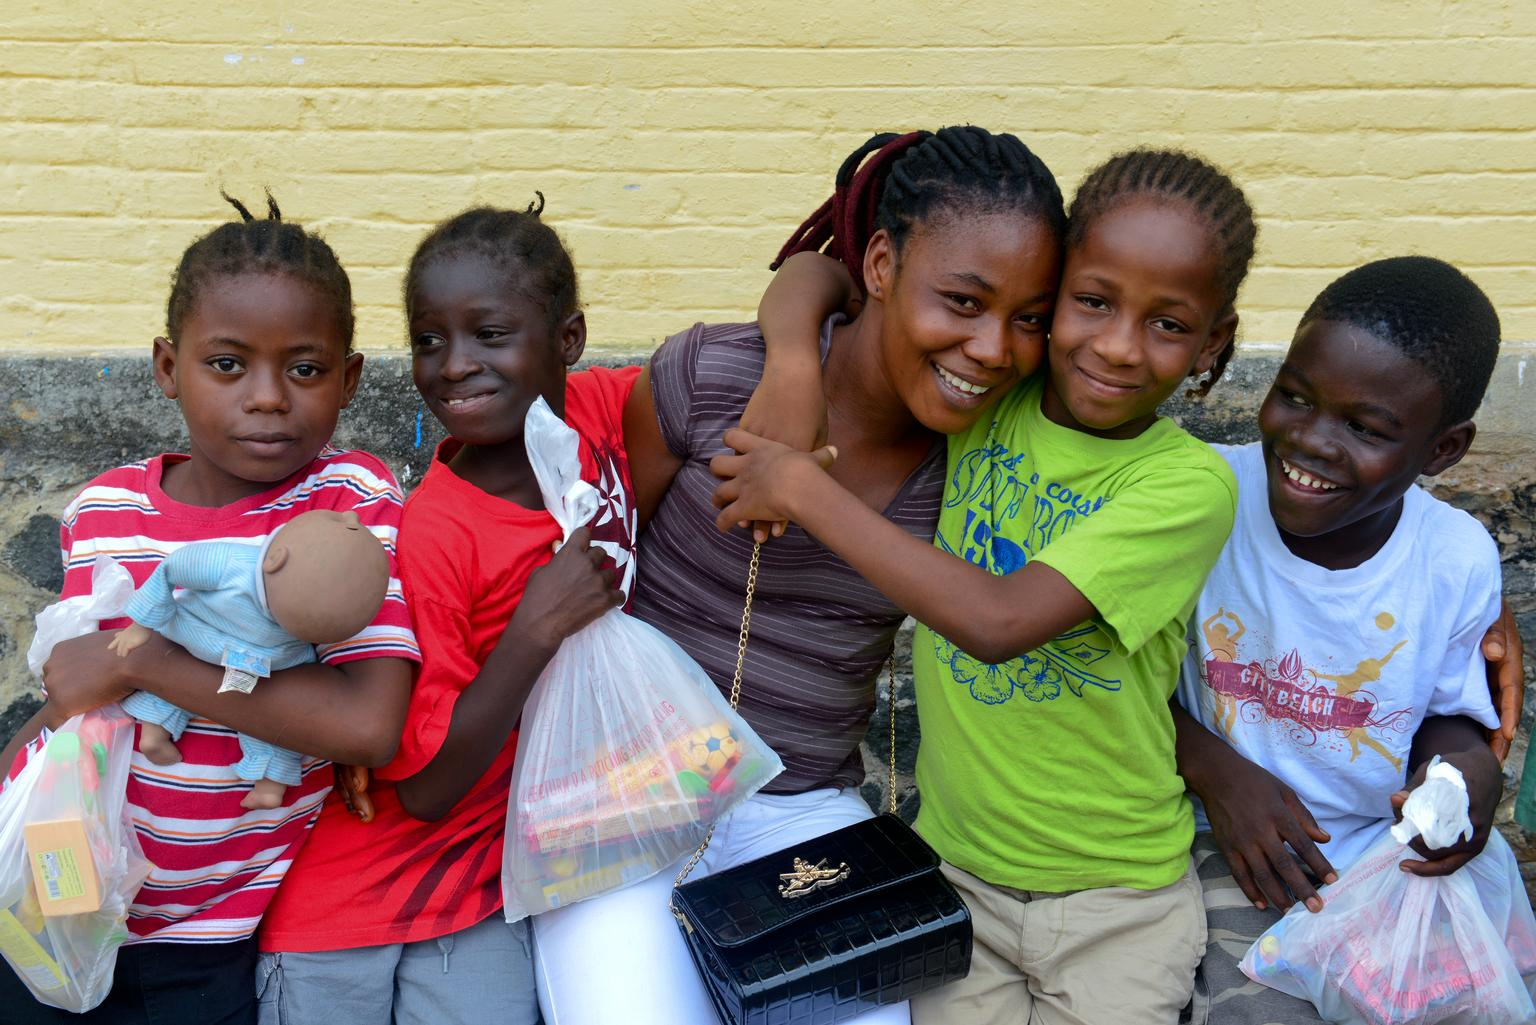 Caretaker Helen Morris hugs young children goodbye as they await being driven to foster homes or the homes of extended family members, at an interim care center for children exposed to the Ebola virus, in Monrovia, Liberia.